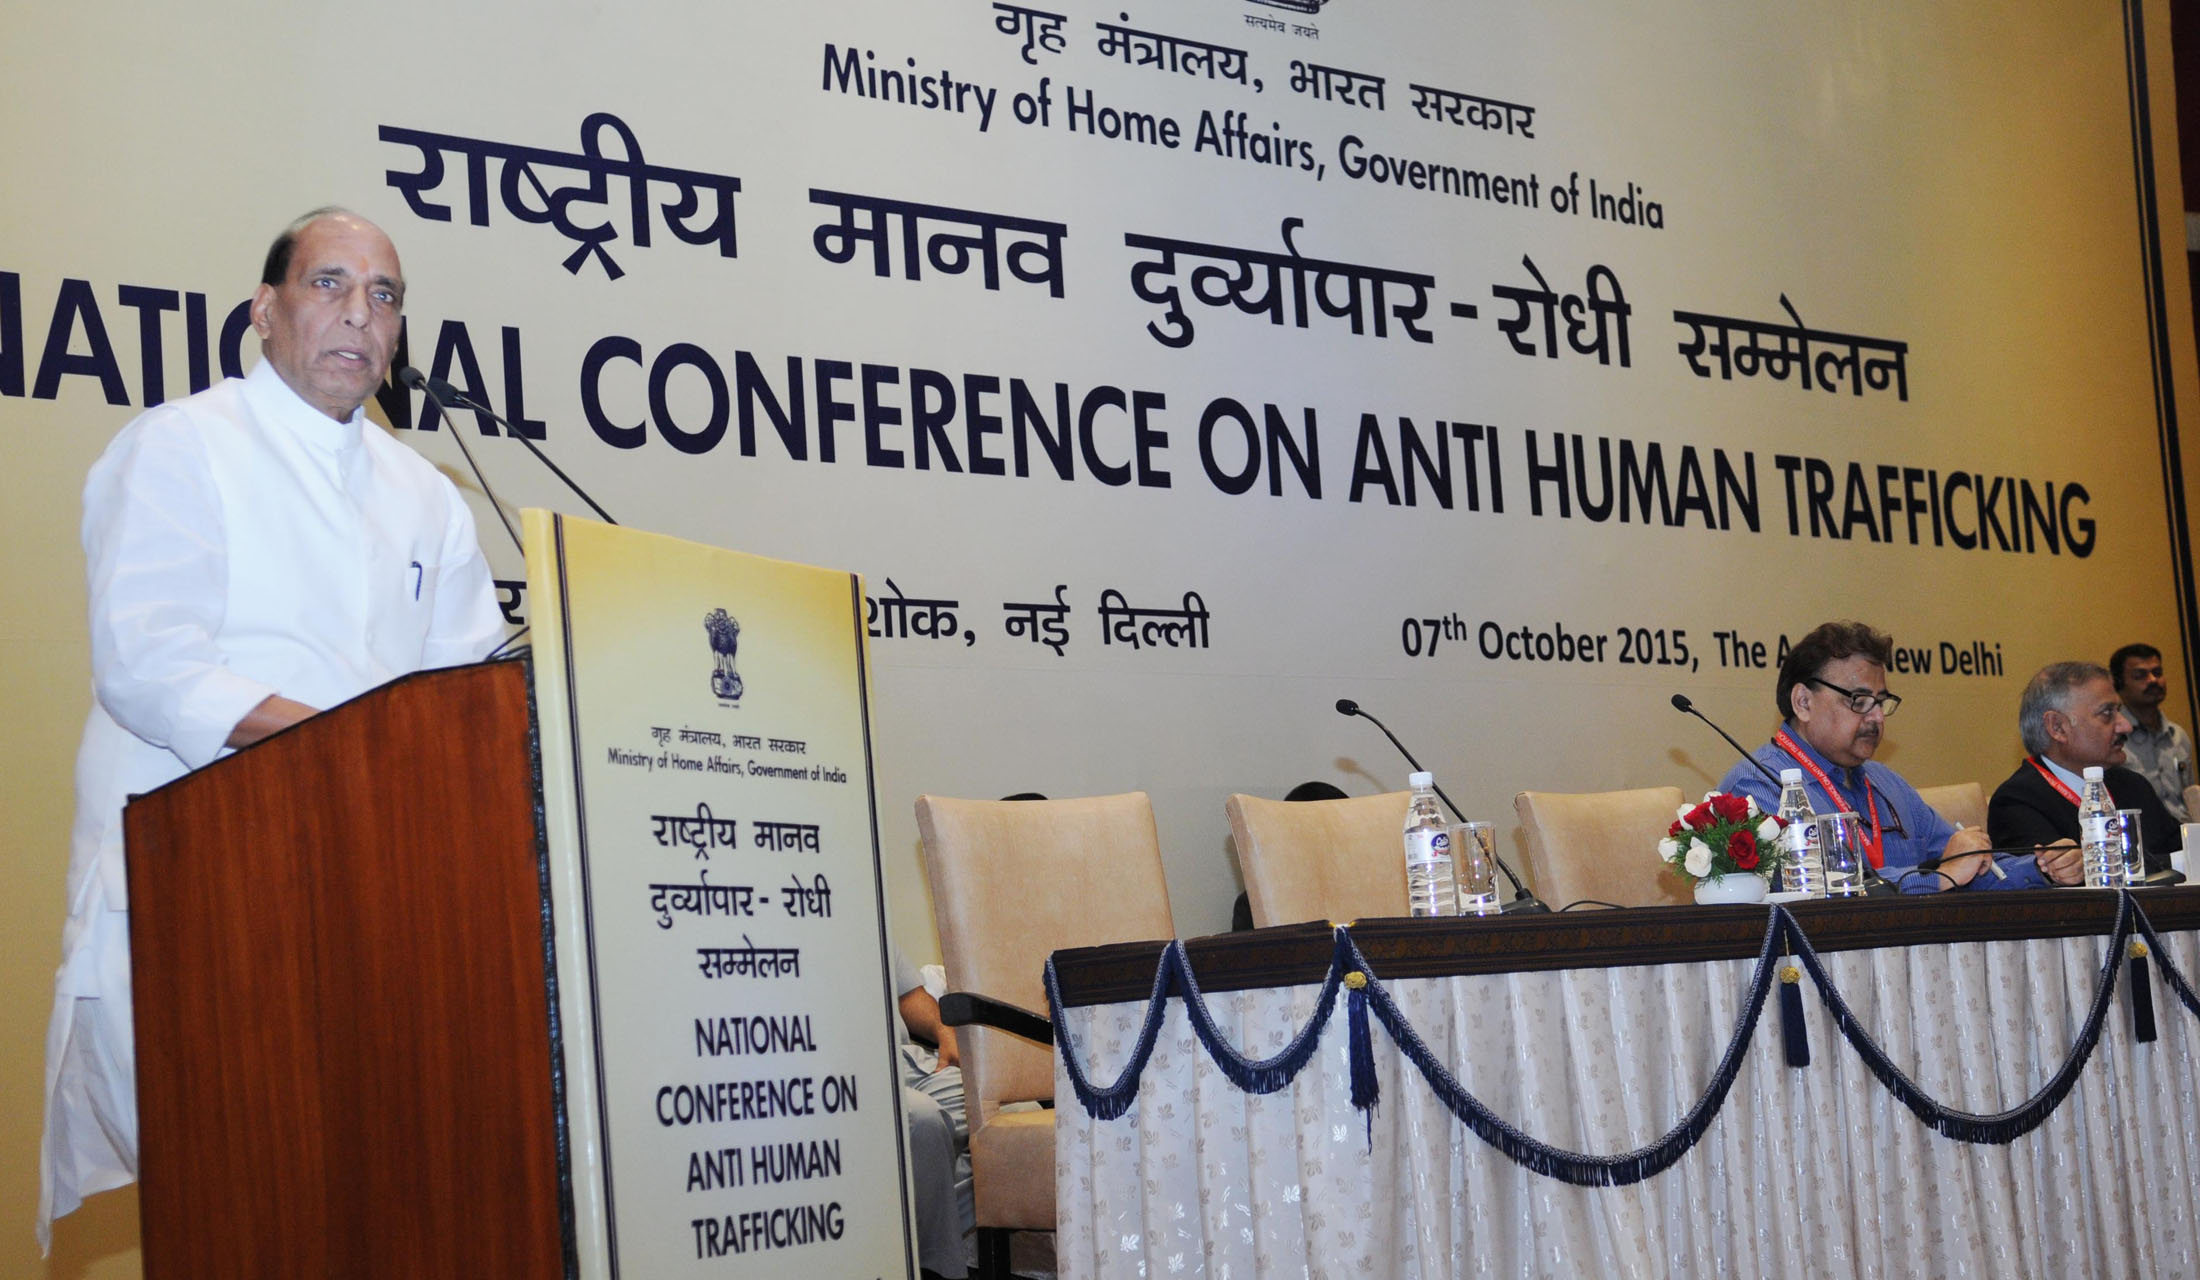 The Union Home Minister, Shri Rajnath Singh addressing at the inauguration of the National Conference on Anti Human Trafficking, in New Delhi on October 07, 2015. The Director, CBI, Shri Anil Kumar Sinha is also seen.